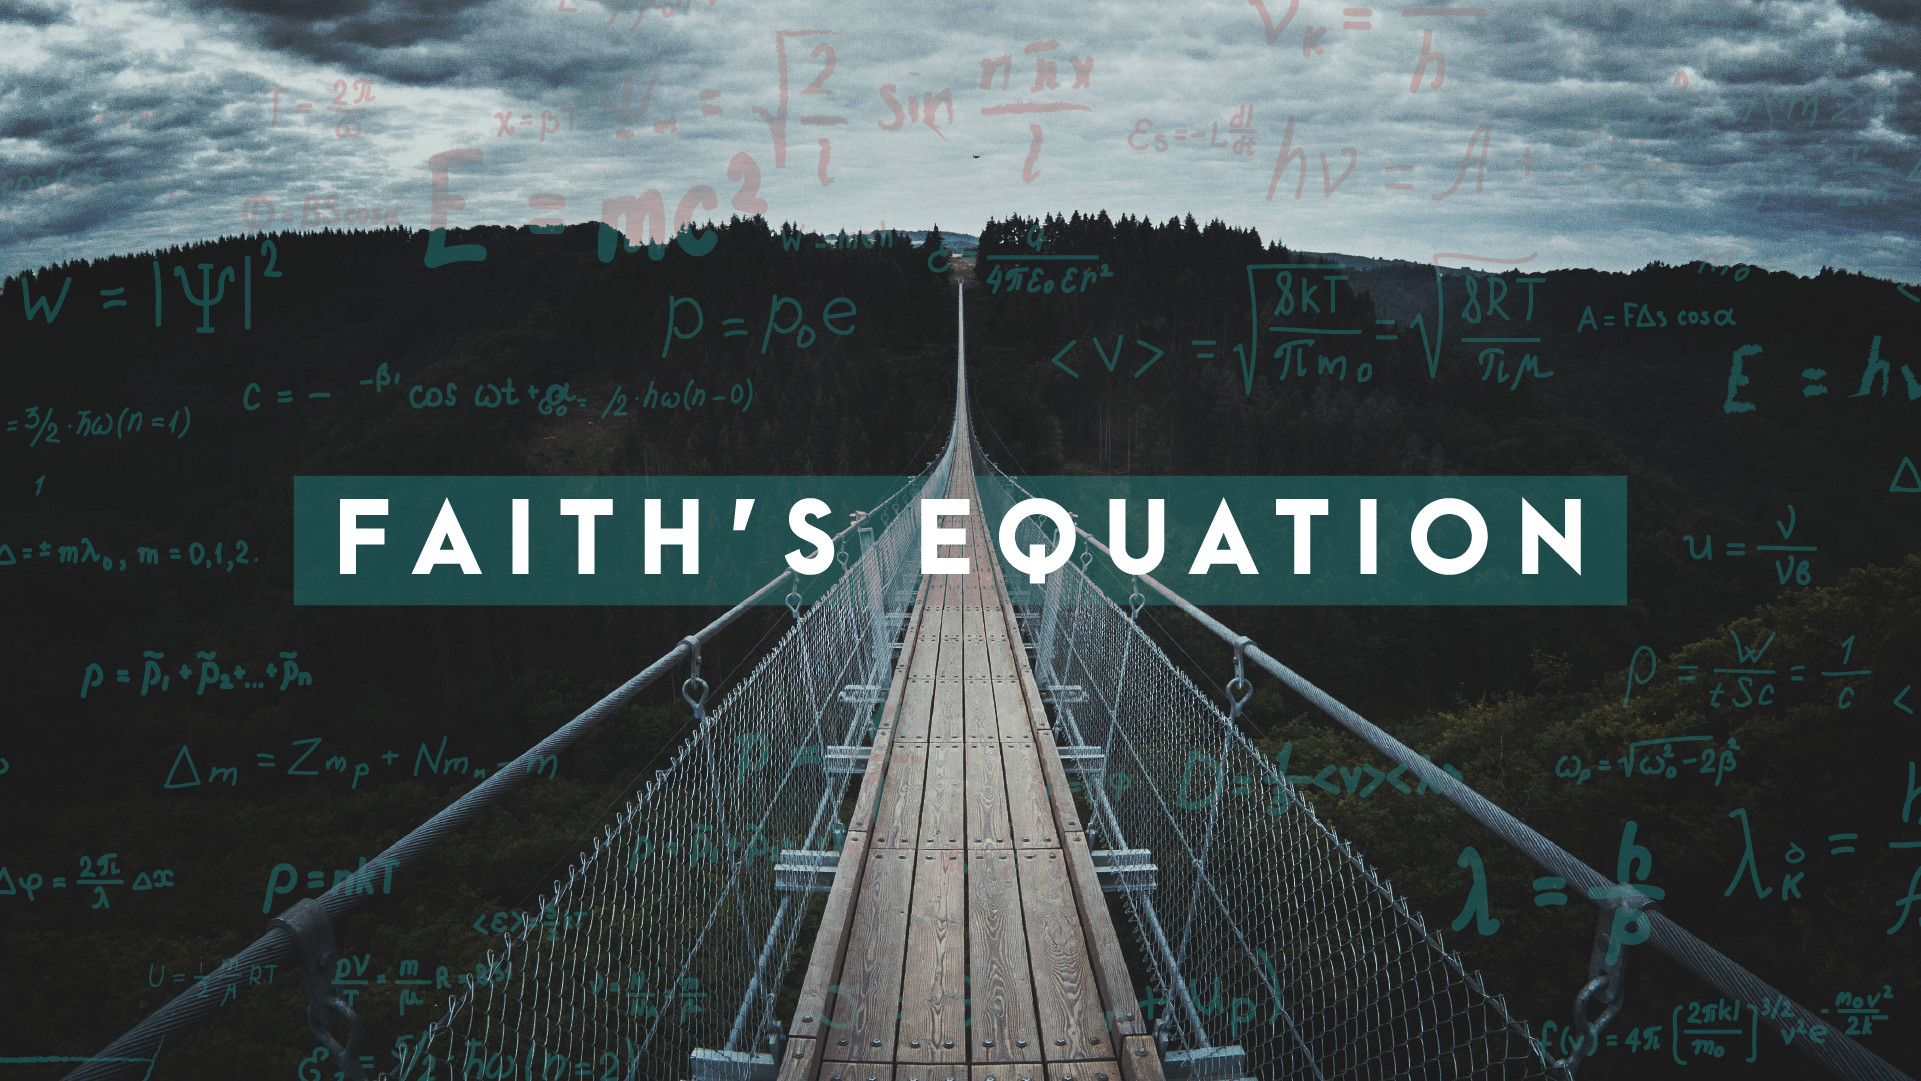 Faiths Equation_Sermon Graphics_Side Screen_1920x1080.png